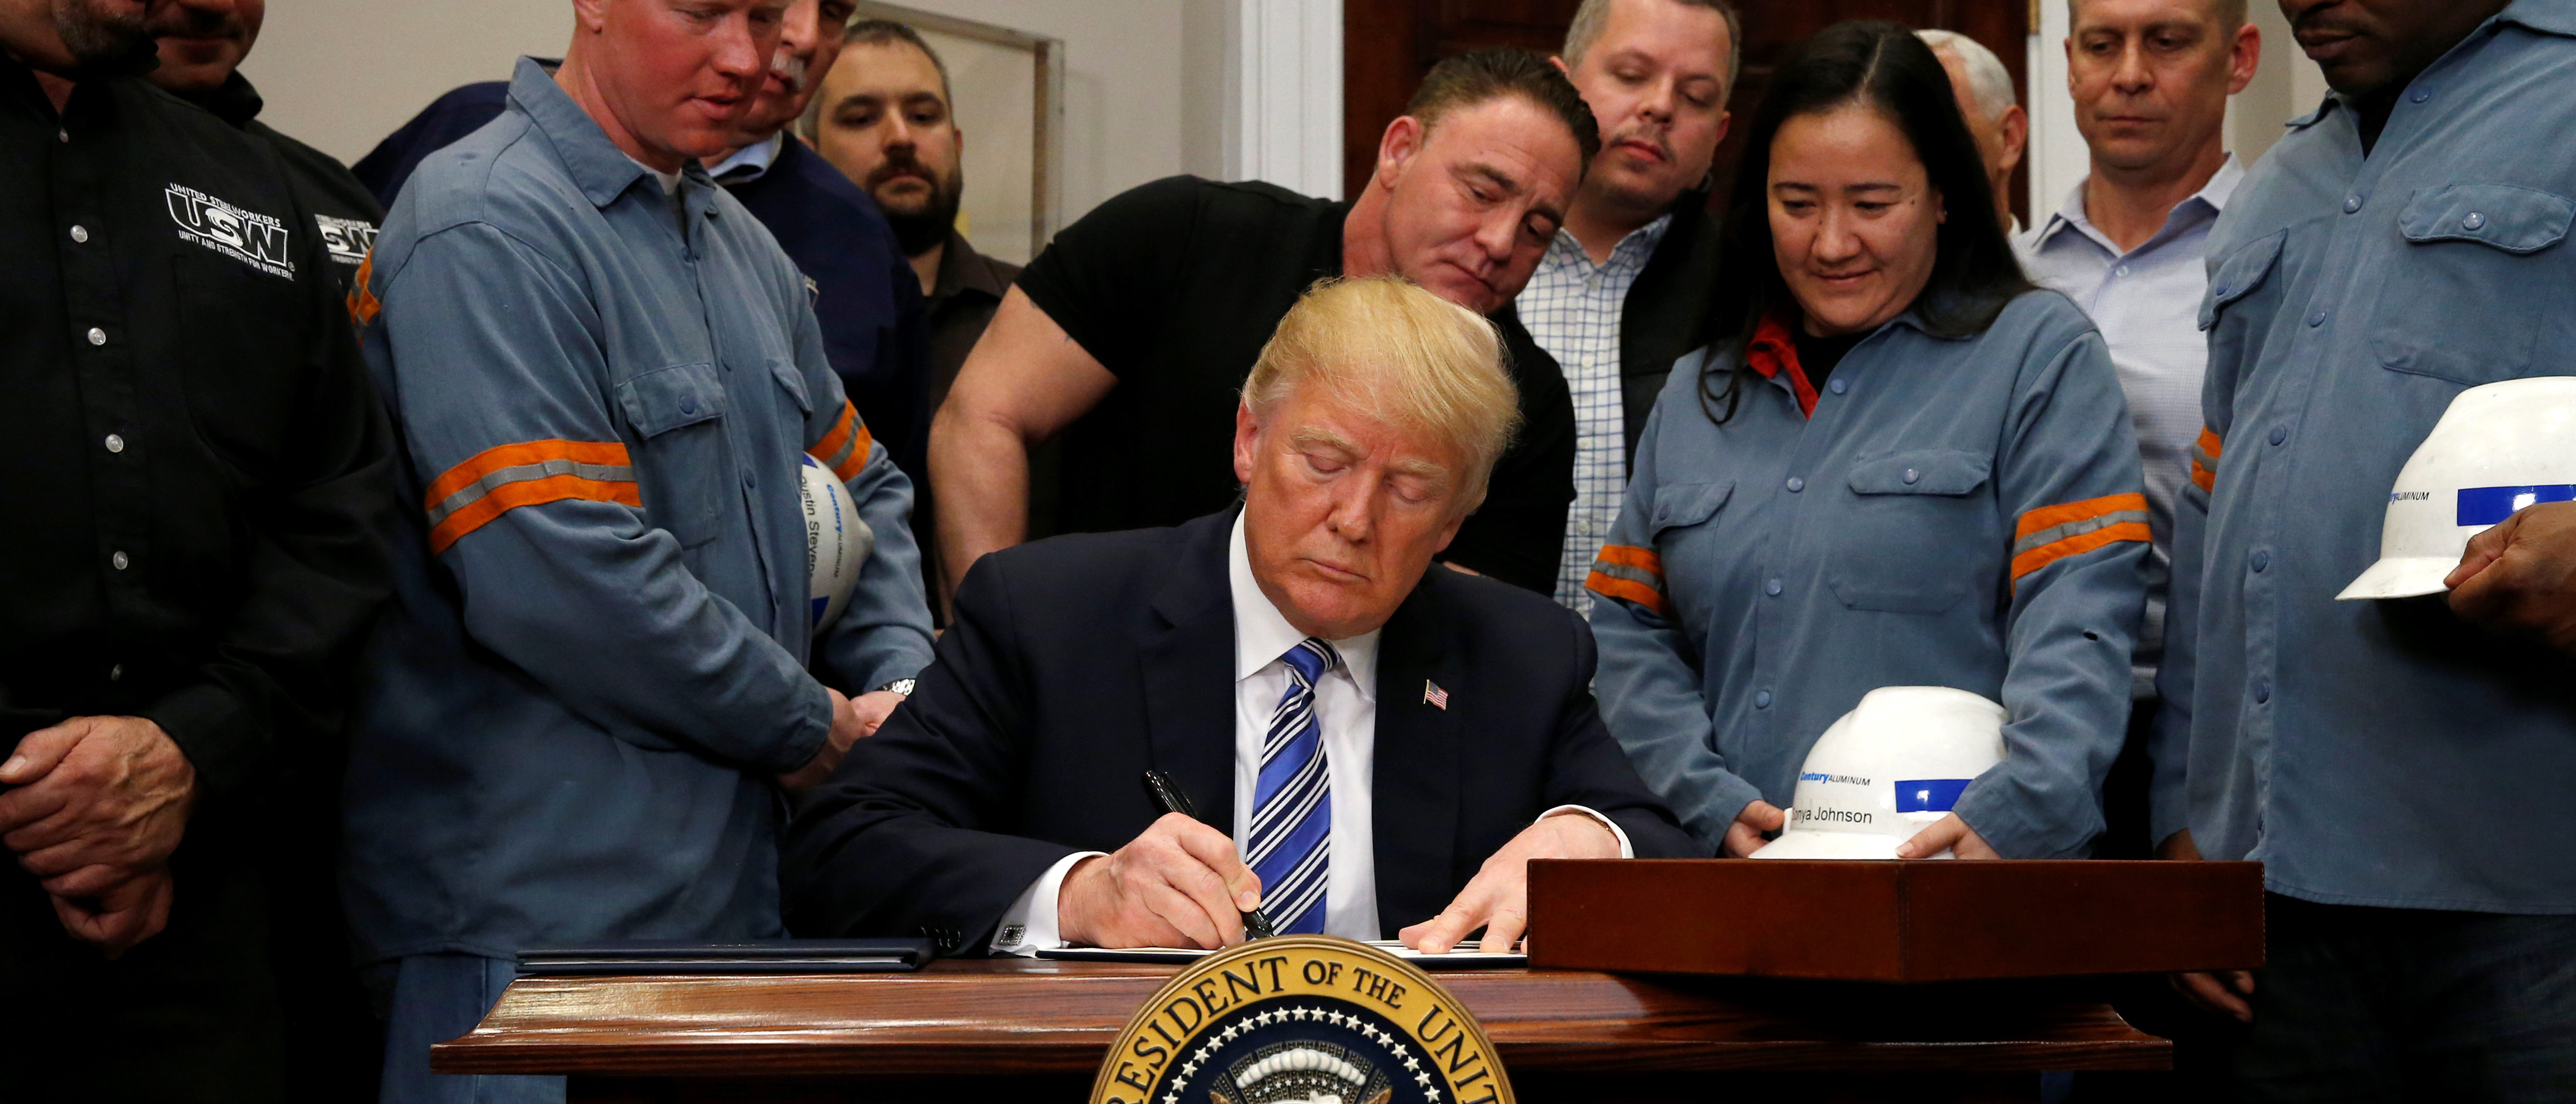 U.S. President Donald Trump signs a presidential proclamation placing tariffs on steel and aluminum imports while surrounded by workers from the steel and aluminum industries at the White House in Washington, U.S. March 8, 2018. REUTERS/Leah Millis | West Virginia Asks EPA To Save Steel